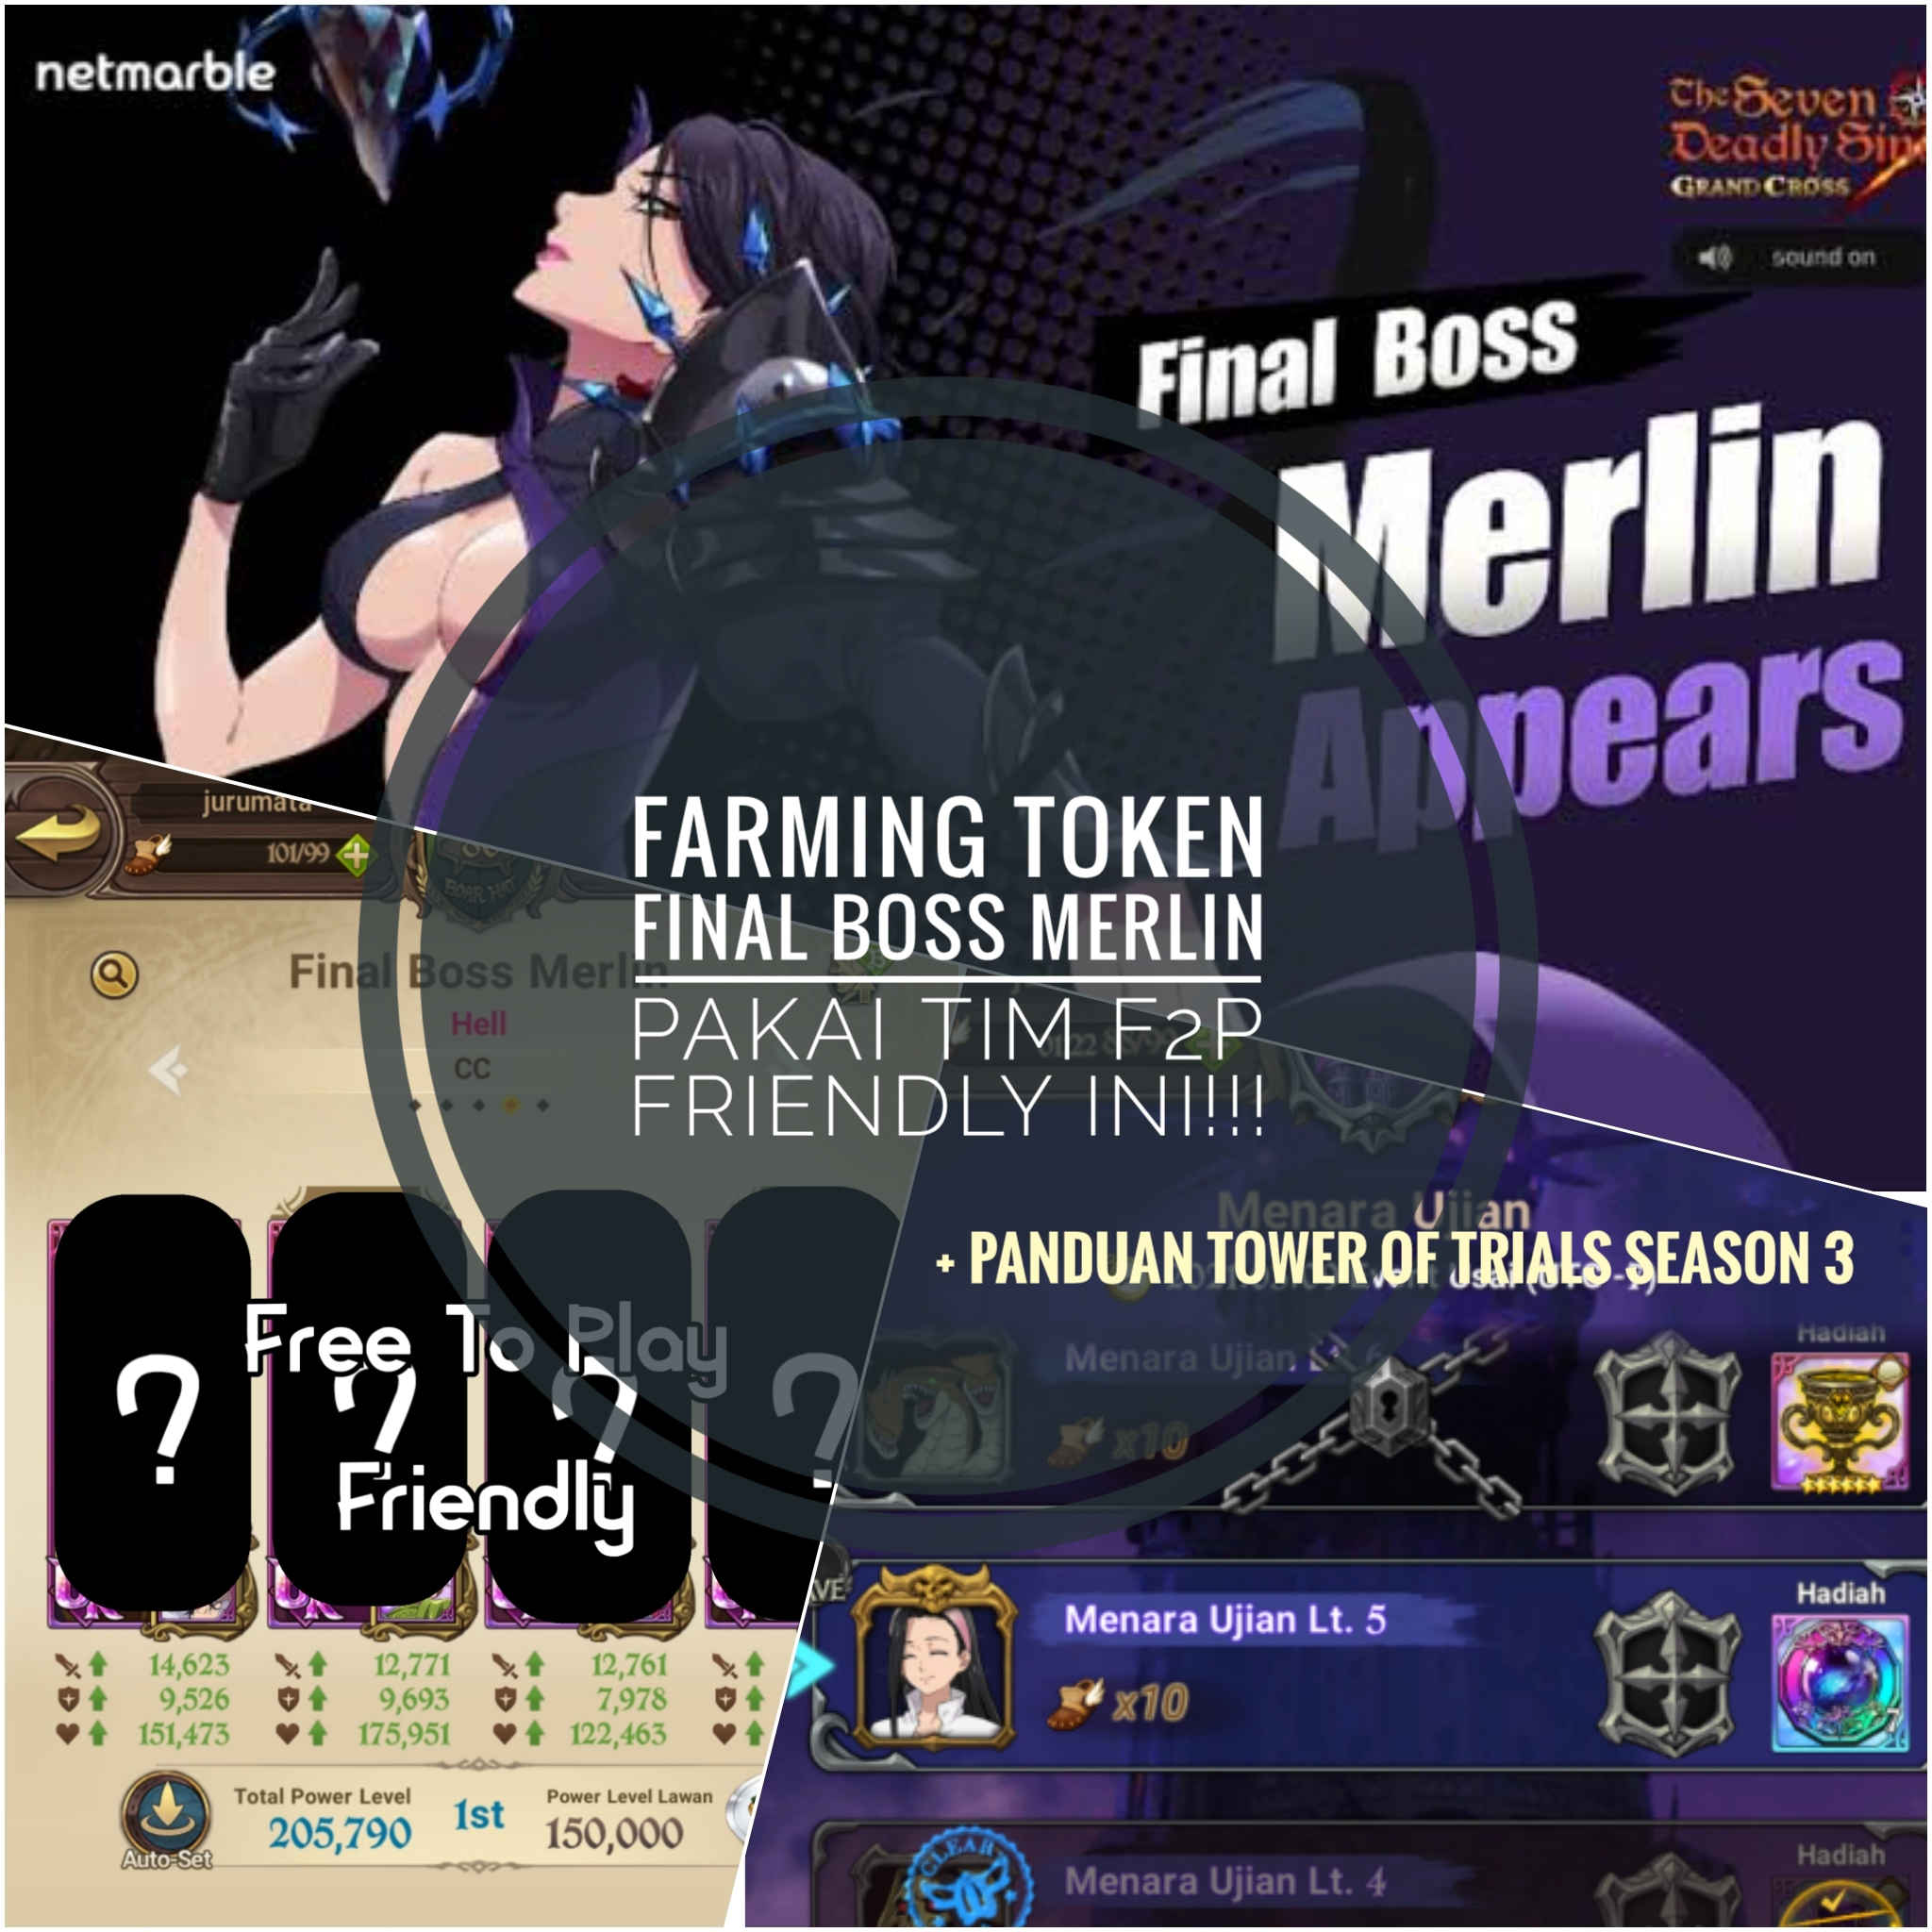 Cara Cepat Farming Final Boss Merlin